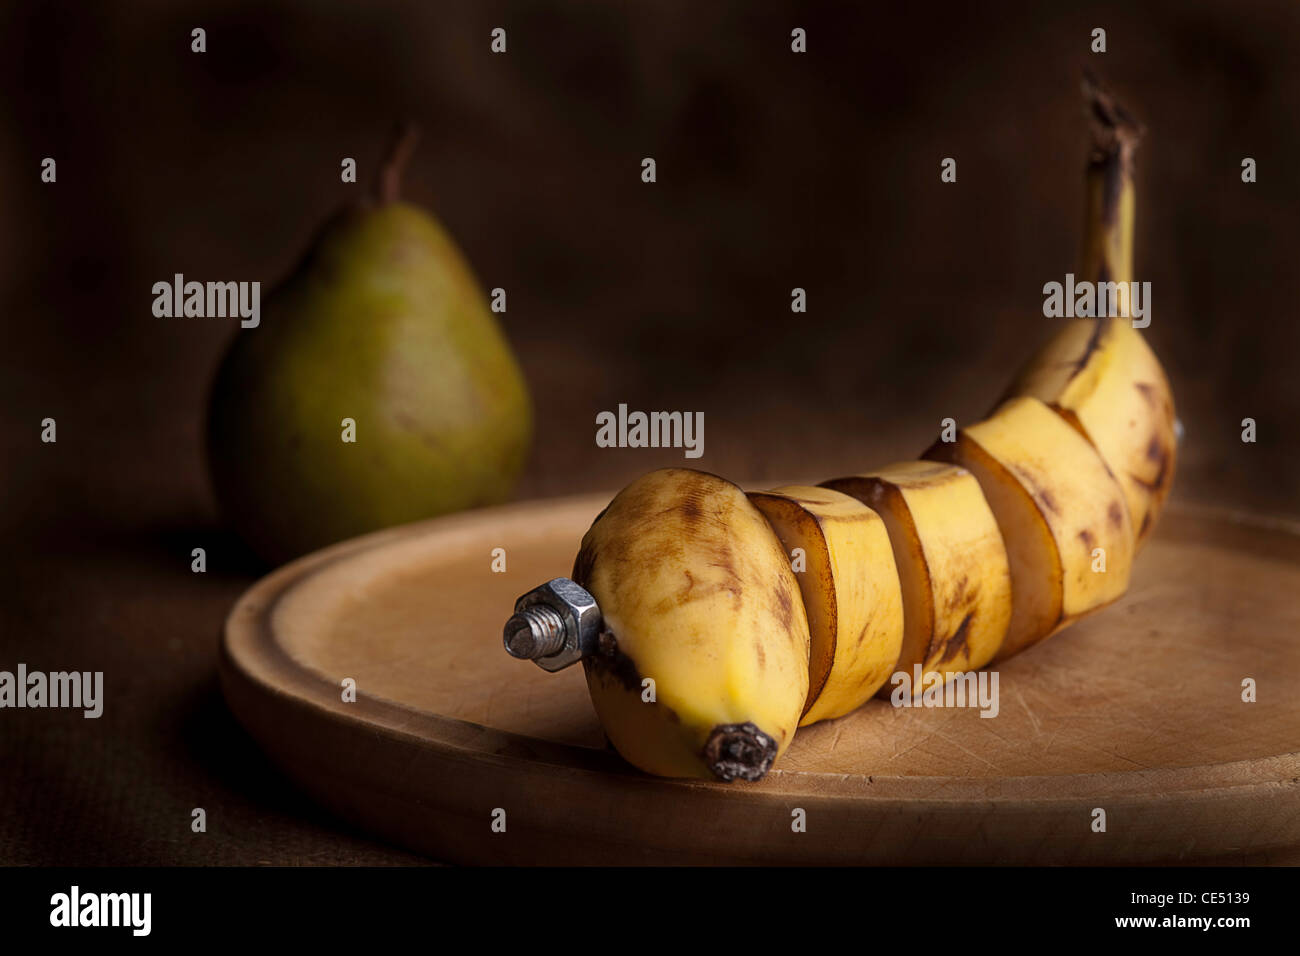 banana manipulated fruit with bolt holding it together - Stock Image